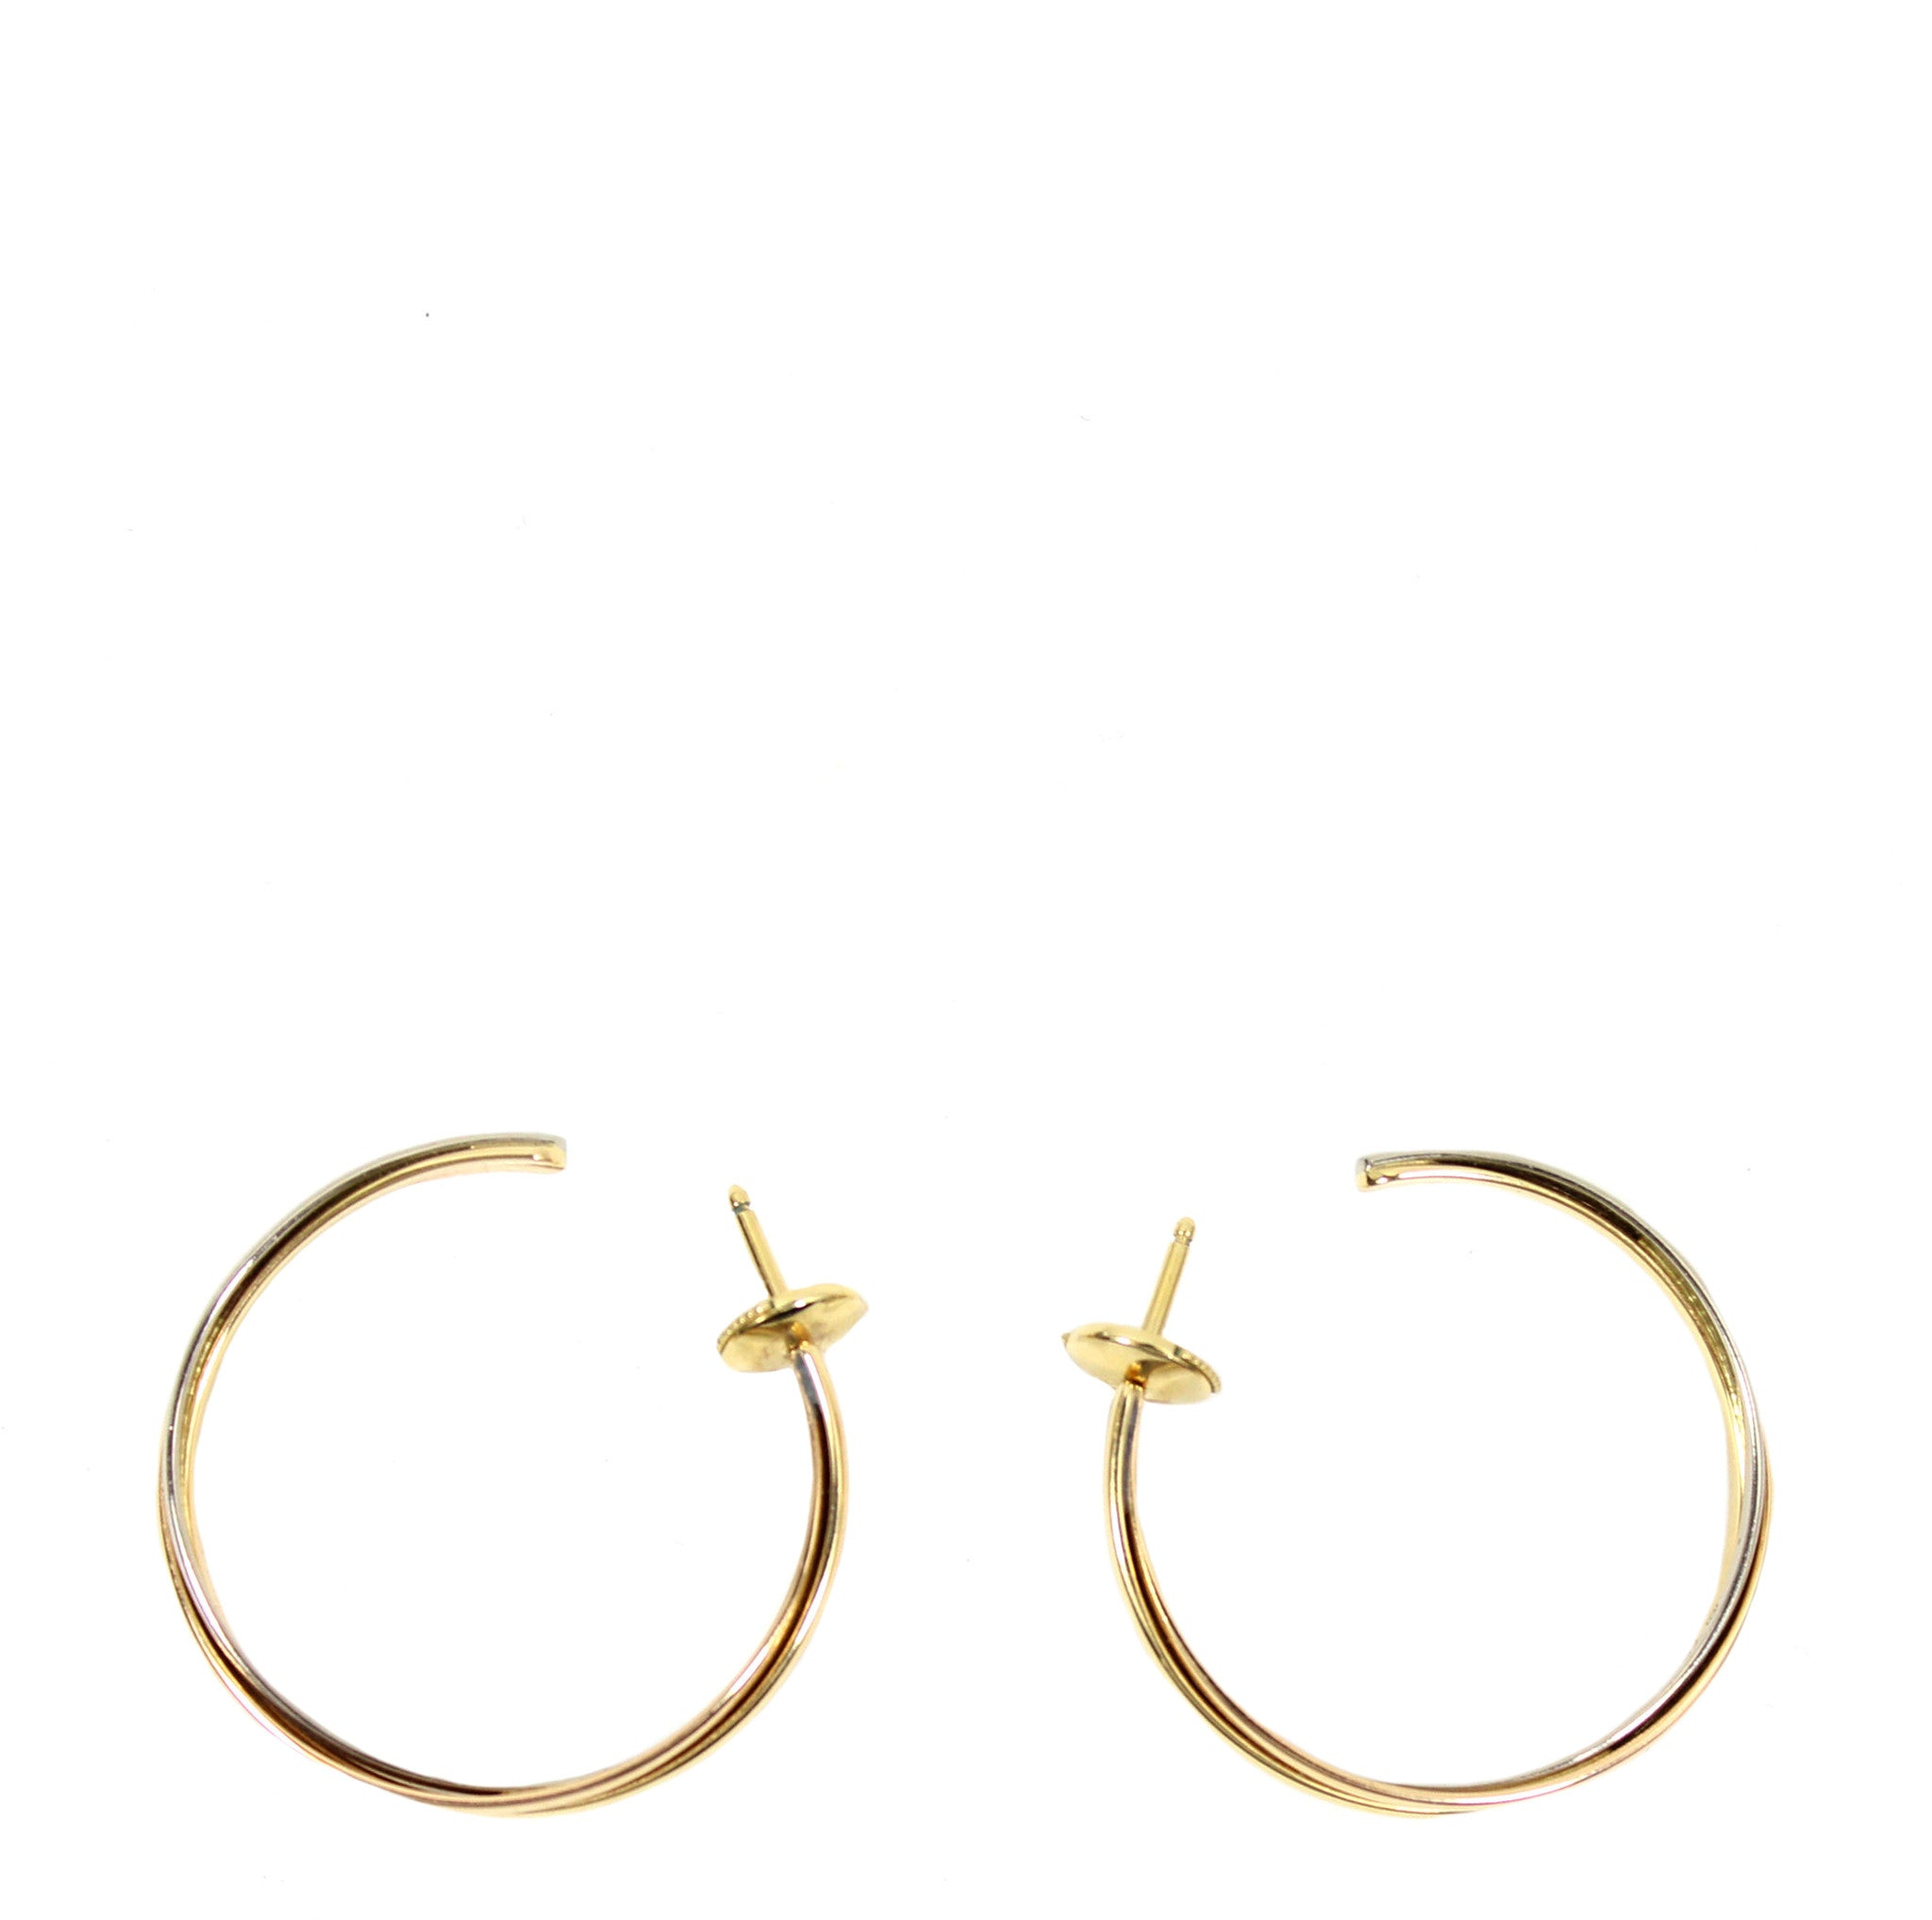 Cartier 'Trinity De Cartier' Hoop 18k Gold Earrings